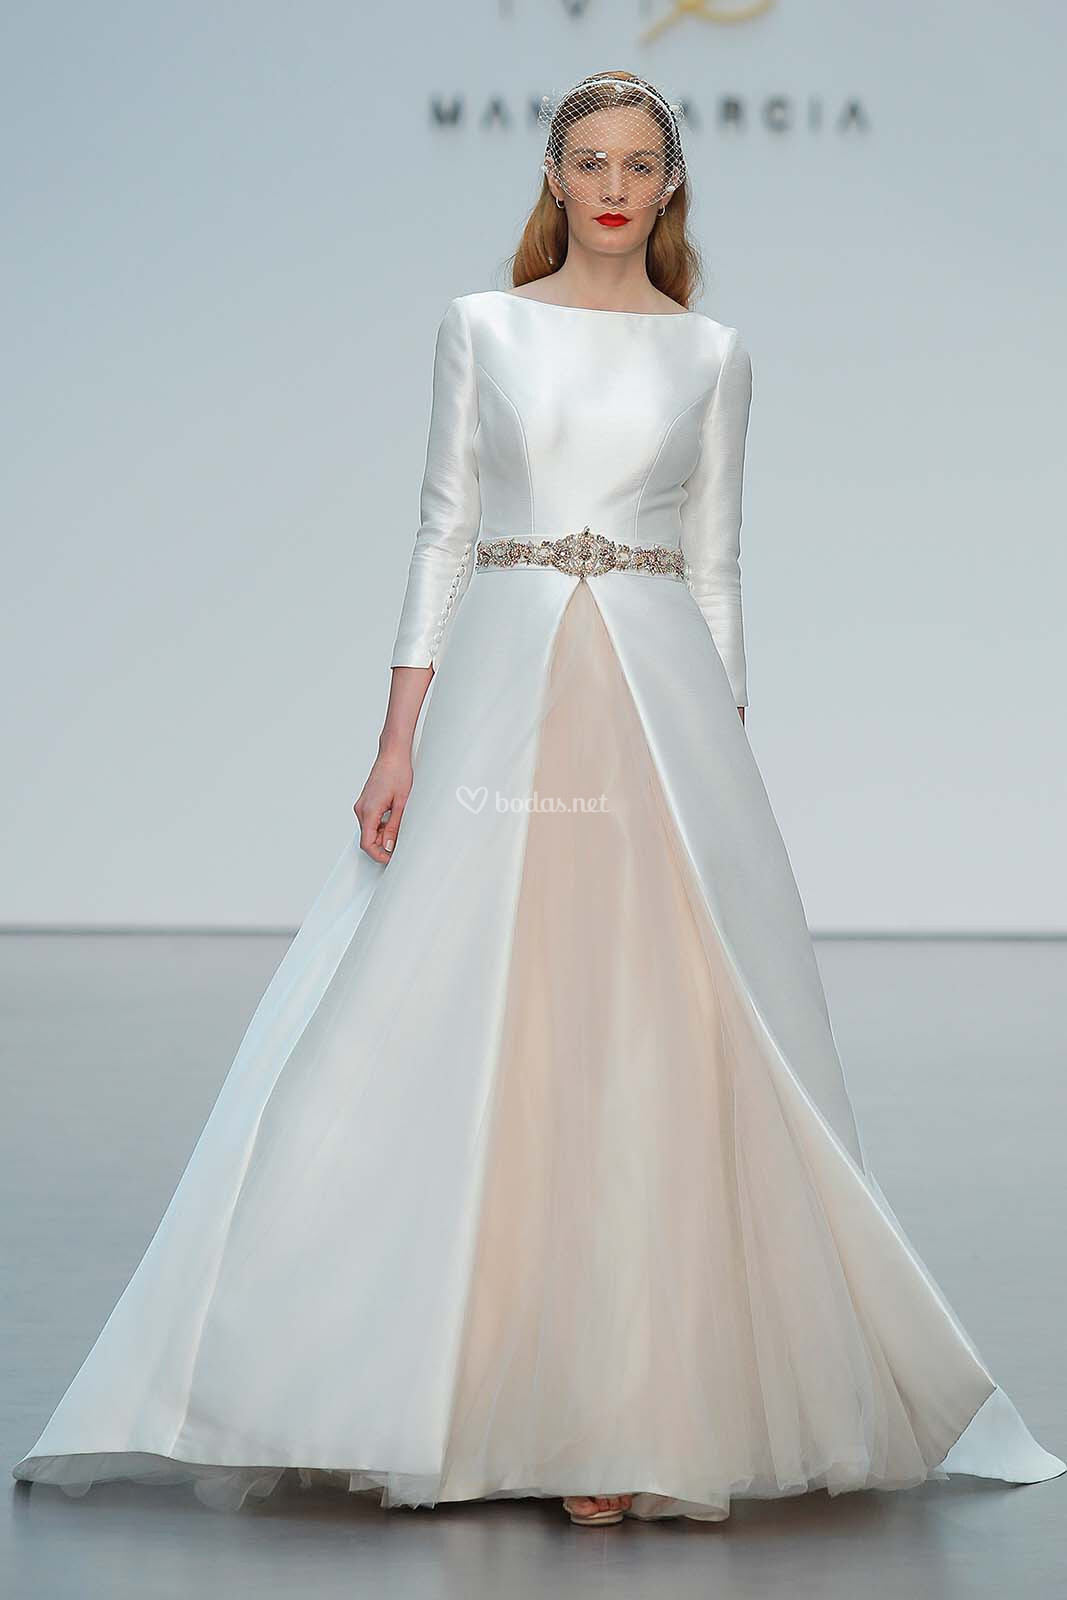 Amazing Vestidos De Novia Pepe Botella Sketch - All Wedding Dresses ...